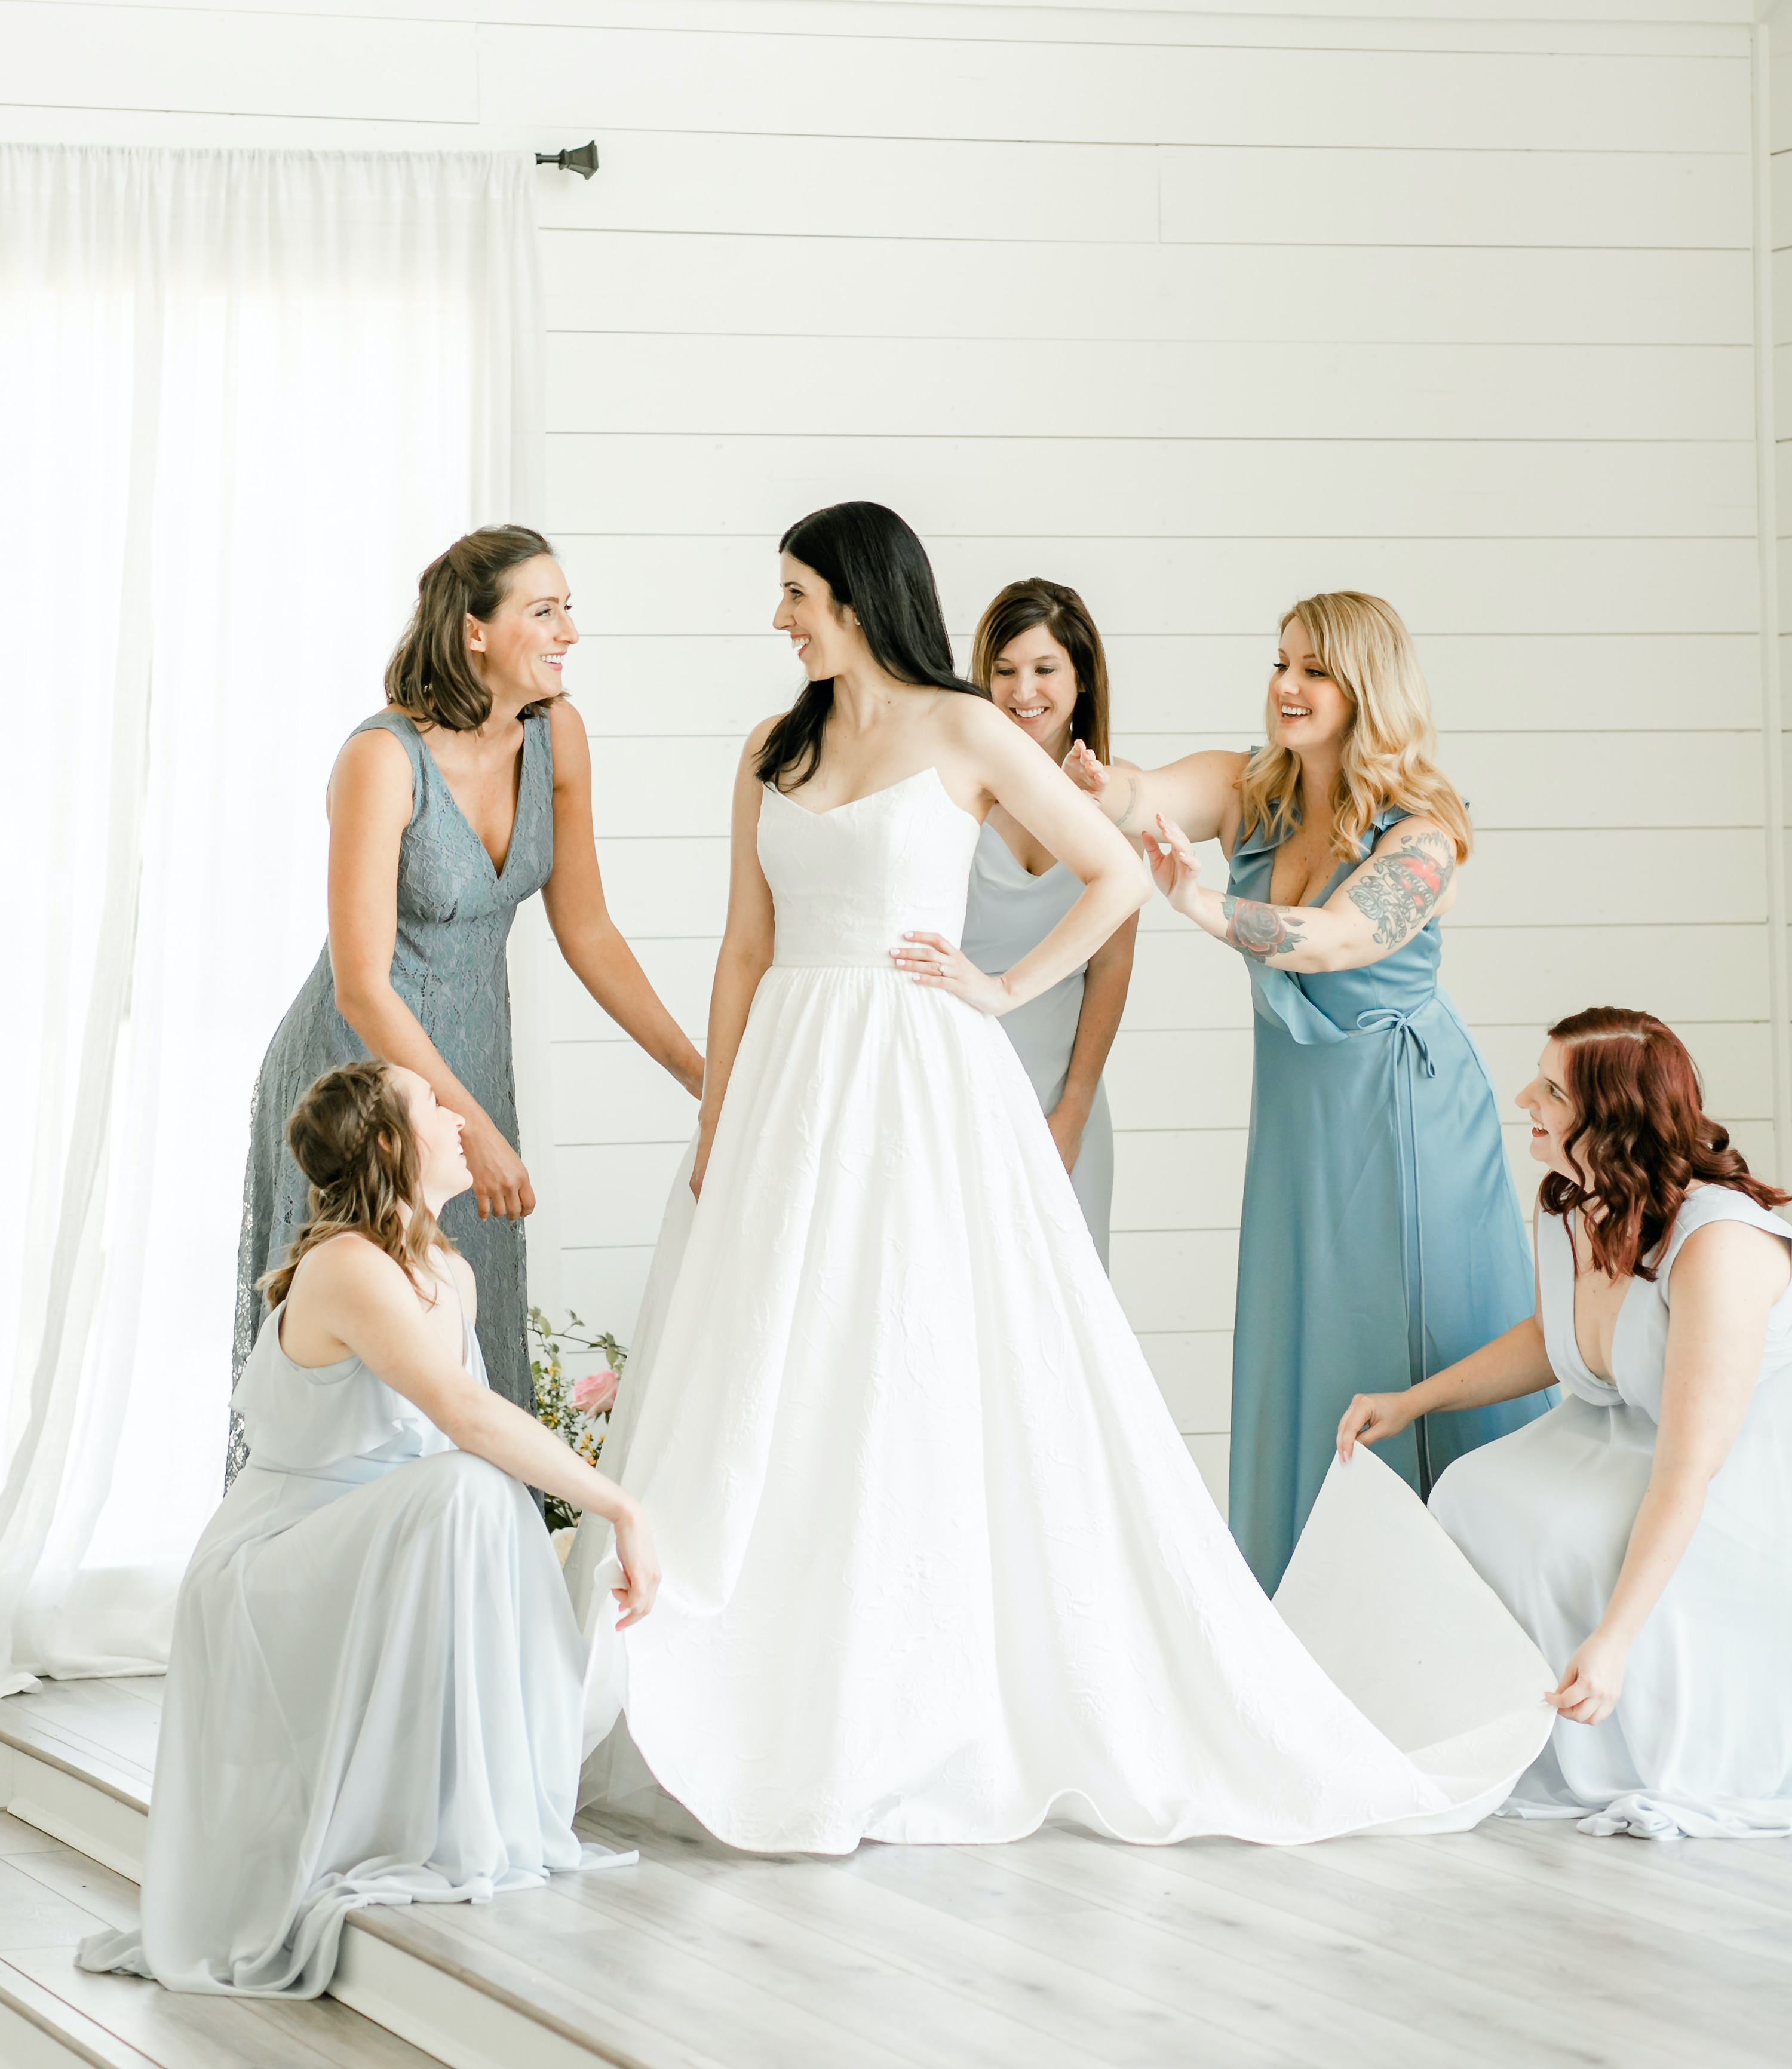 The bride gets ready with her bridesmaids, who are in different shades of blue dresses.